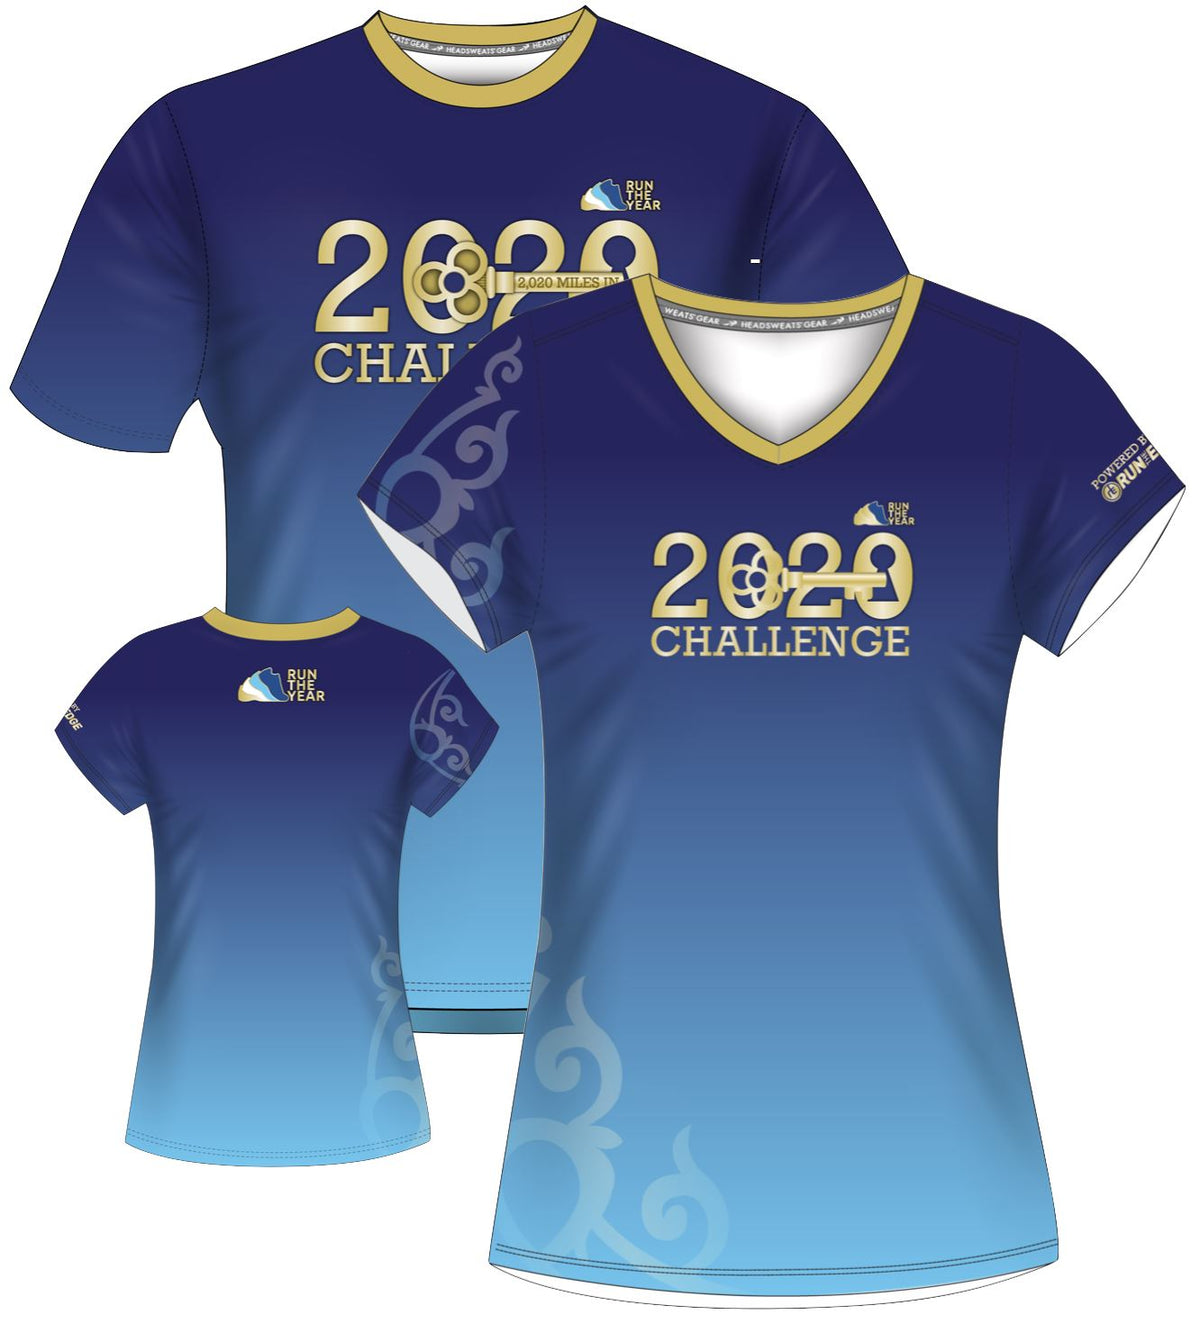 Run The Year 2020 Short Sleeve Tech-T Shirts Run The Edge